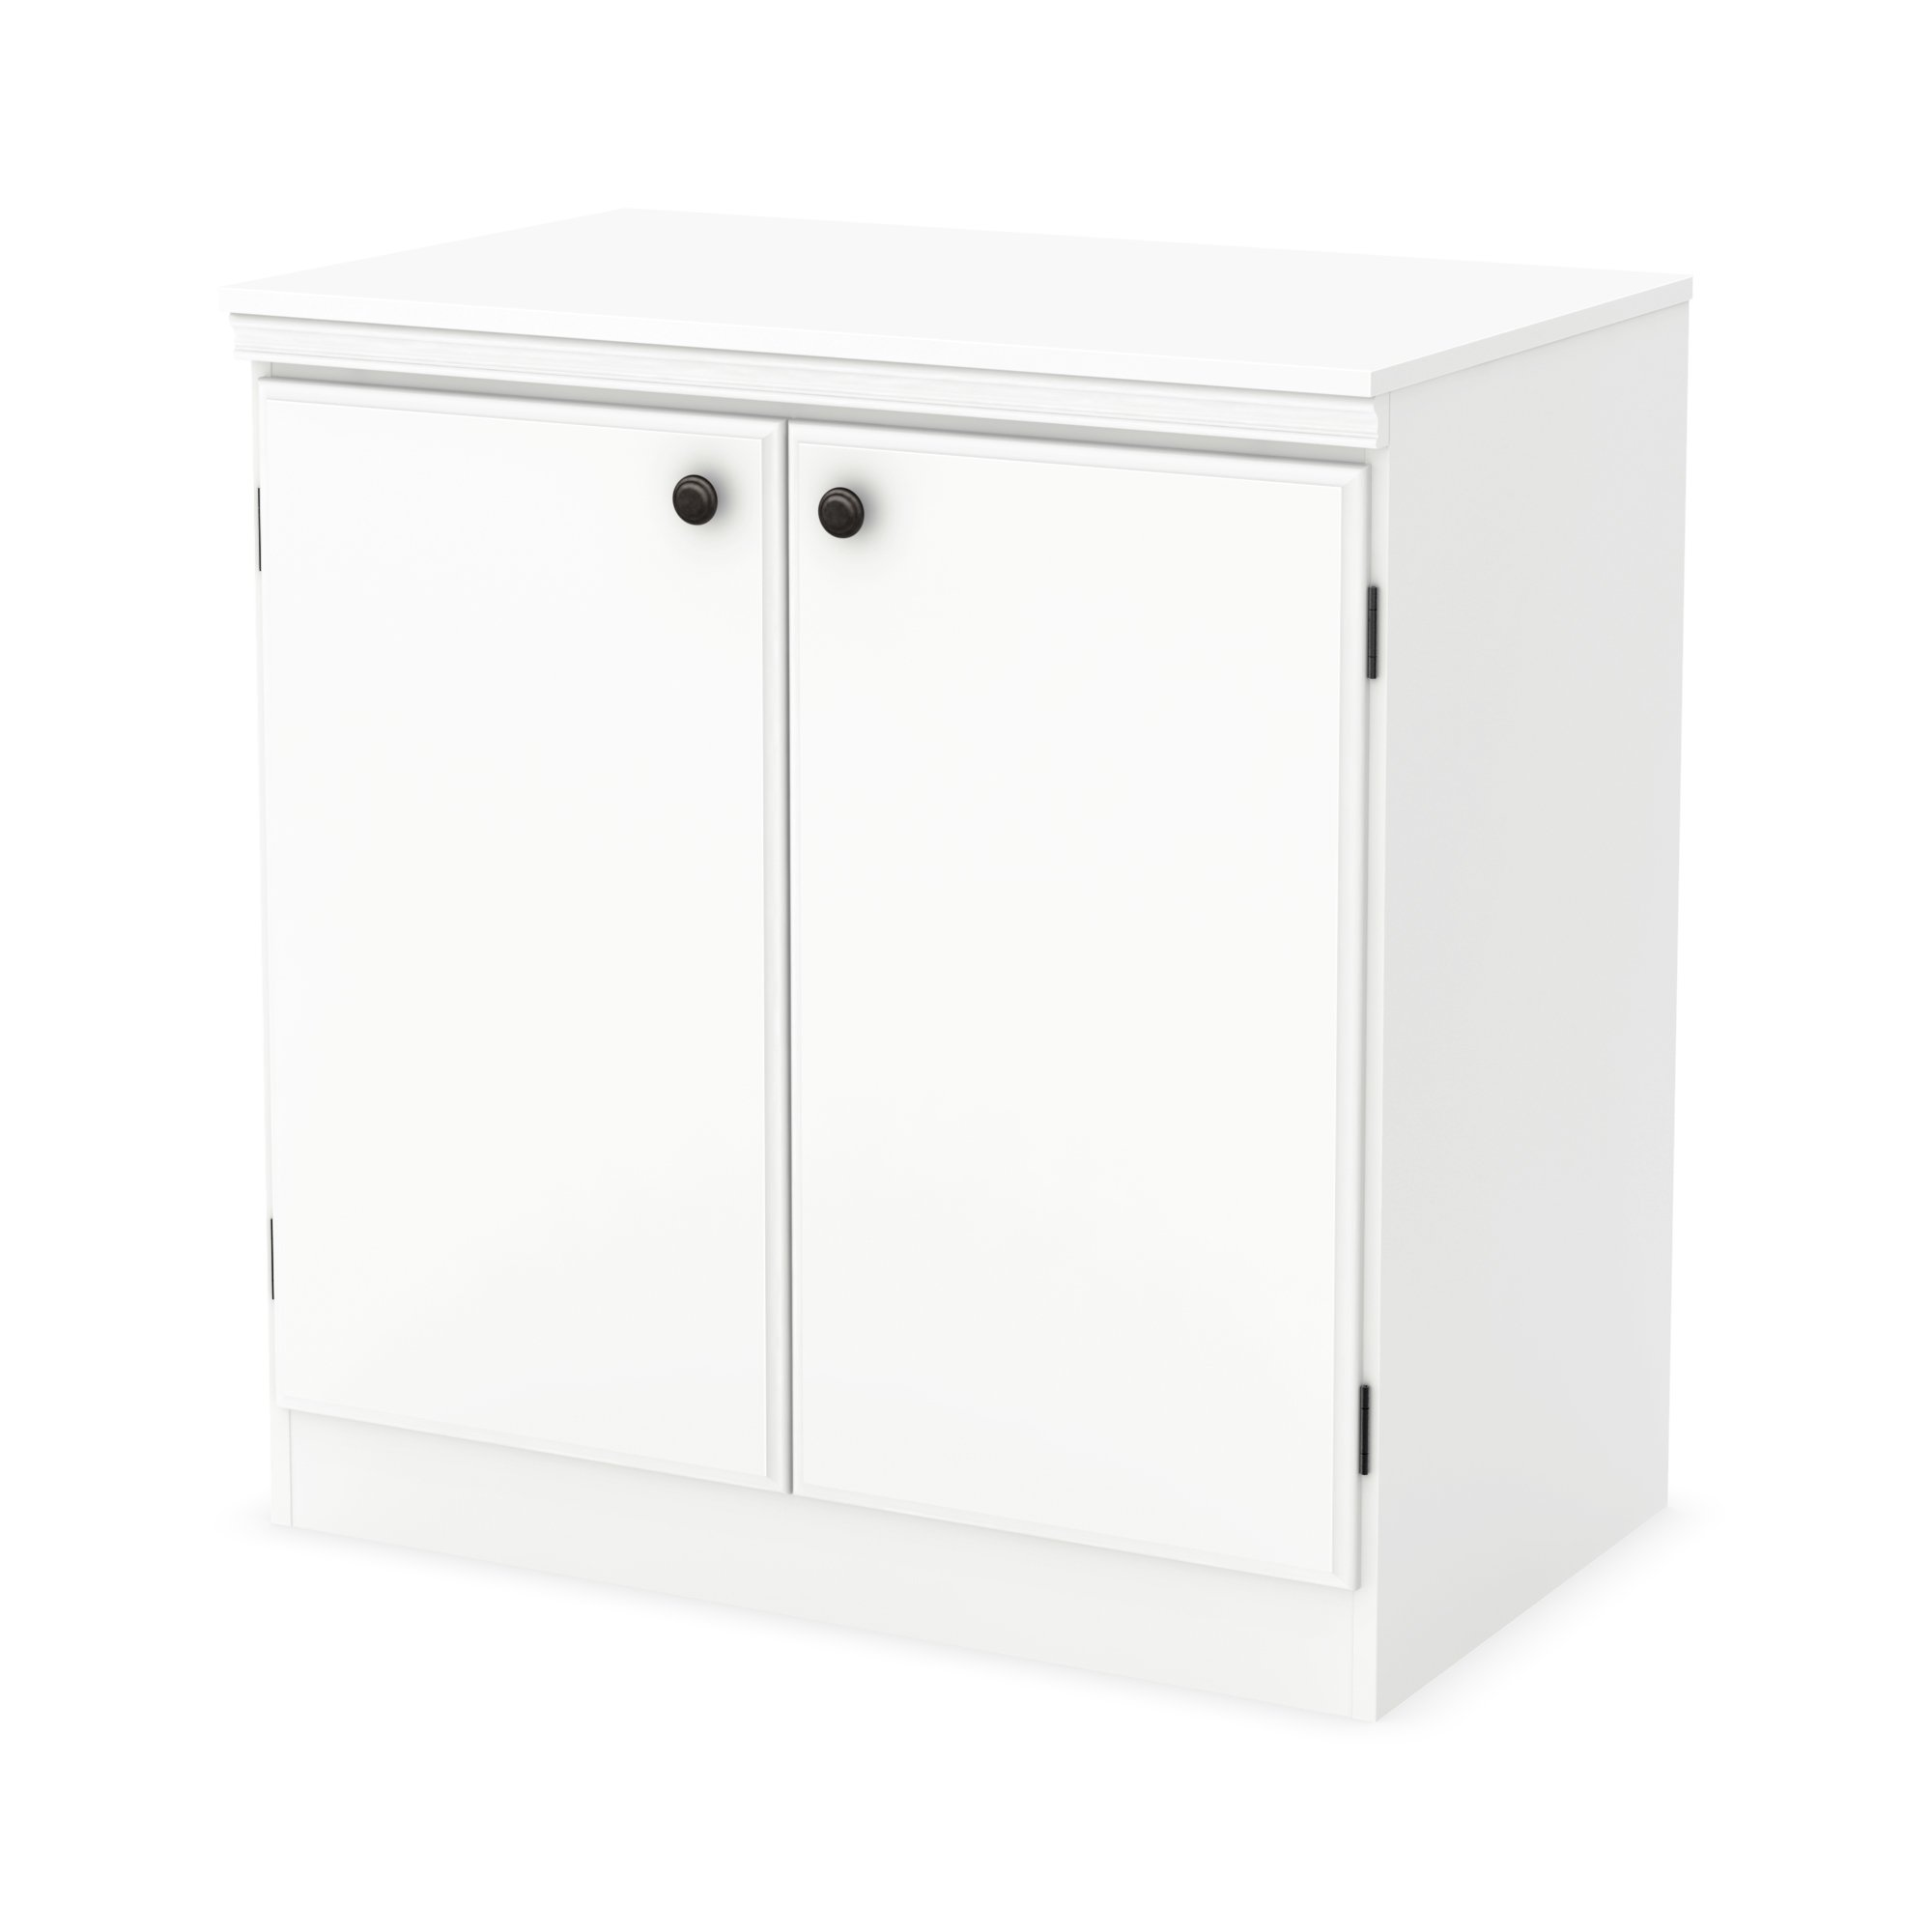 South Shore Morgan 2-Door Storage Cabinet, Pure White by South Shore